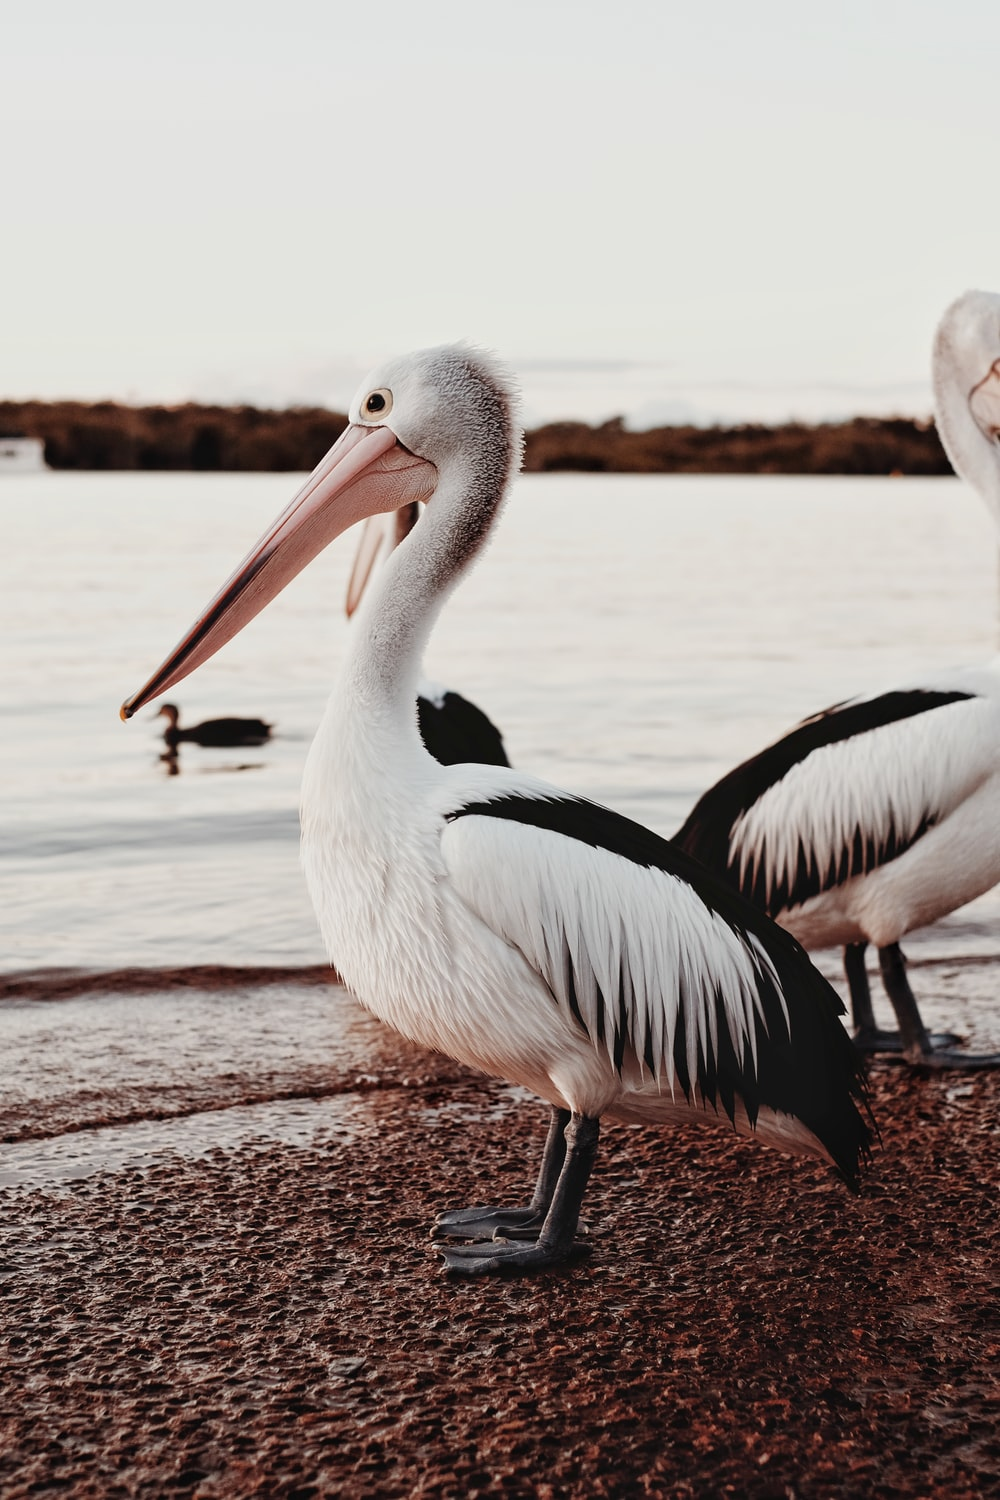 white pelican on brown wooden dock during daytime